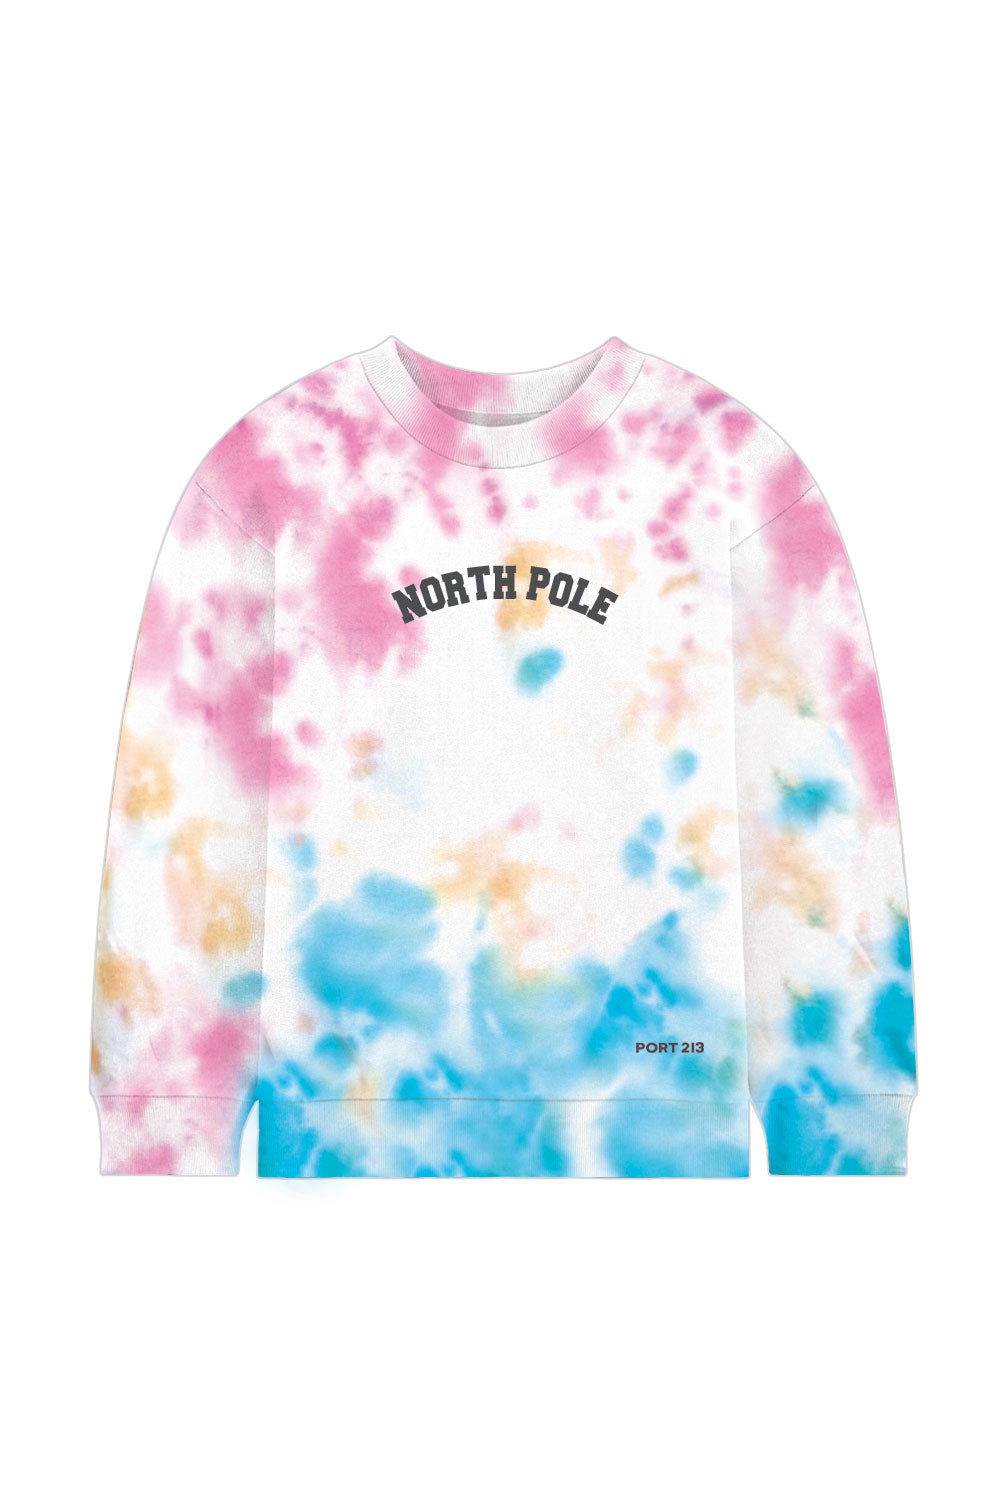 North Pole Tie-Dye Crew Neck Sweatshirt